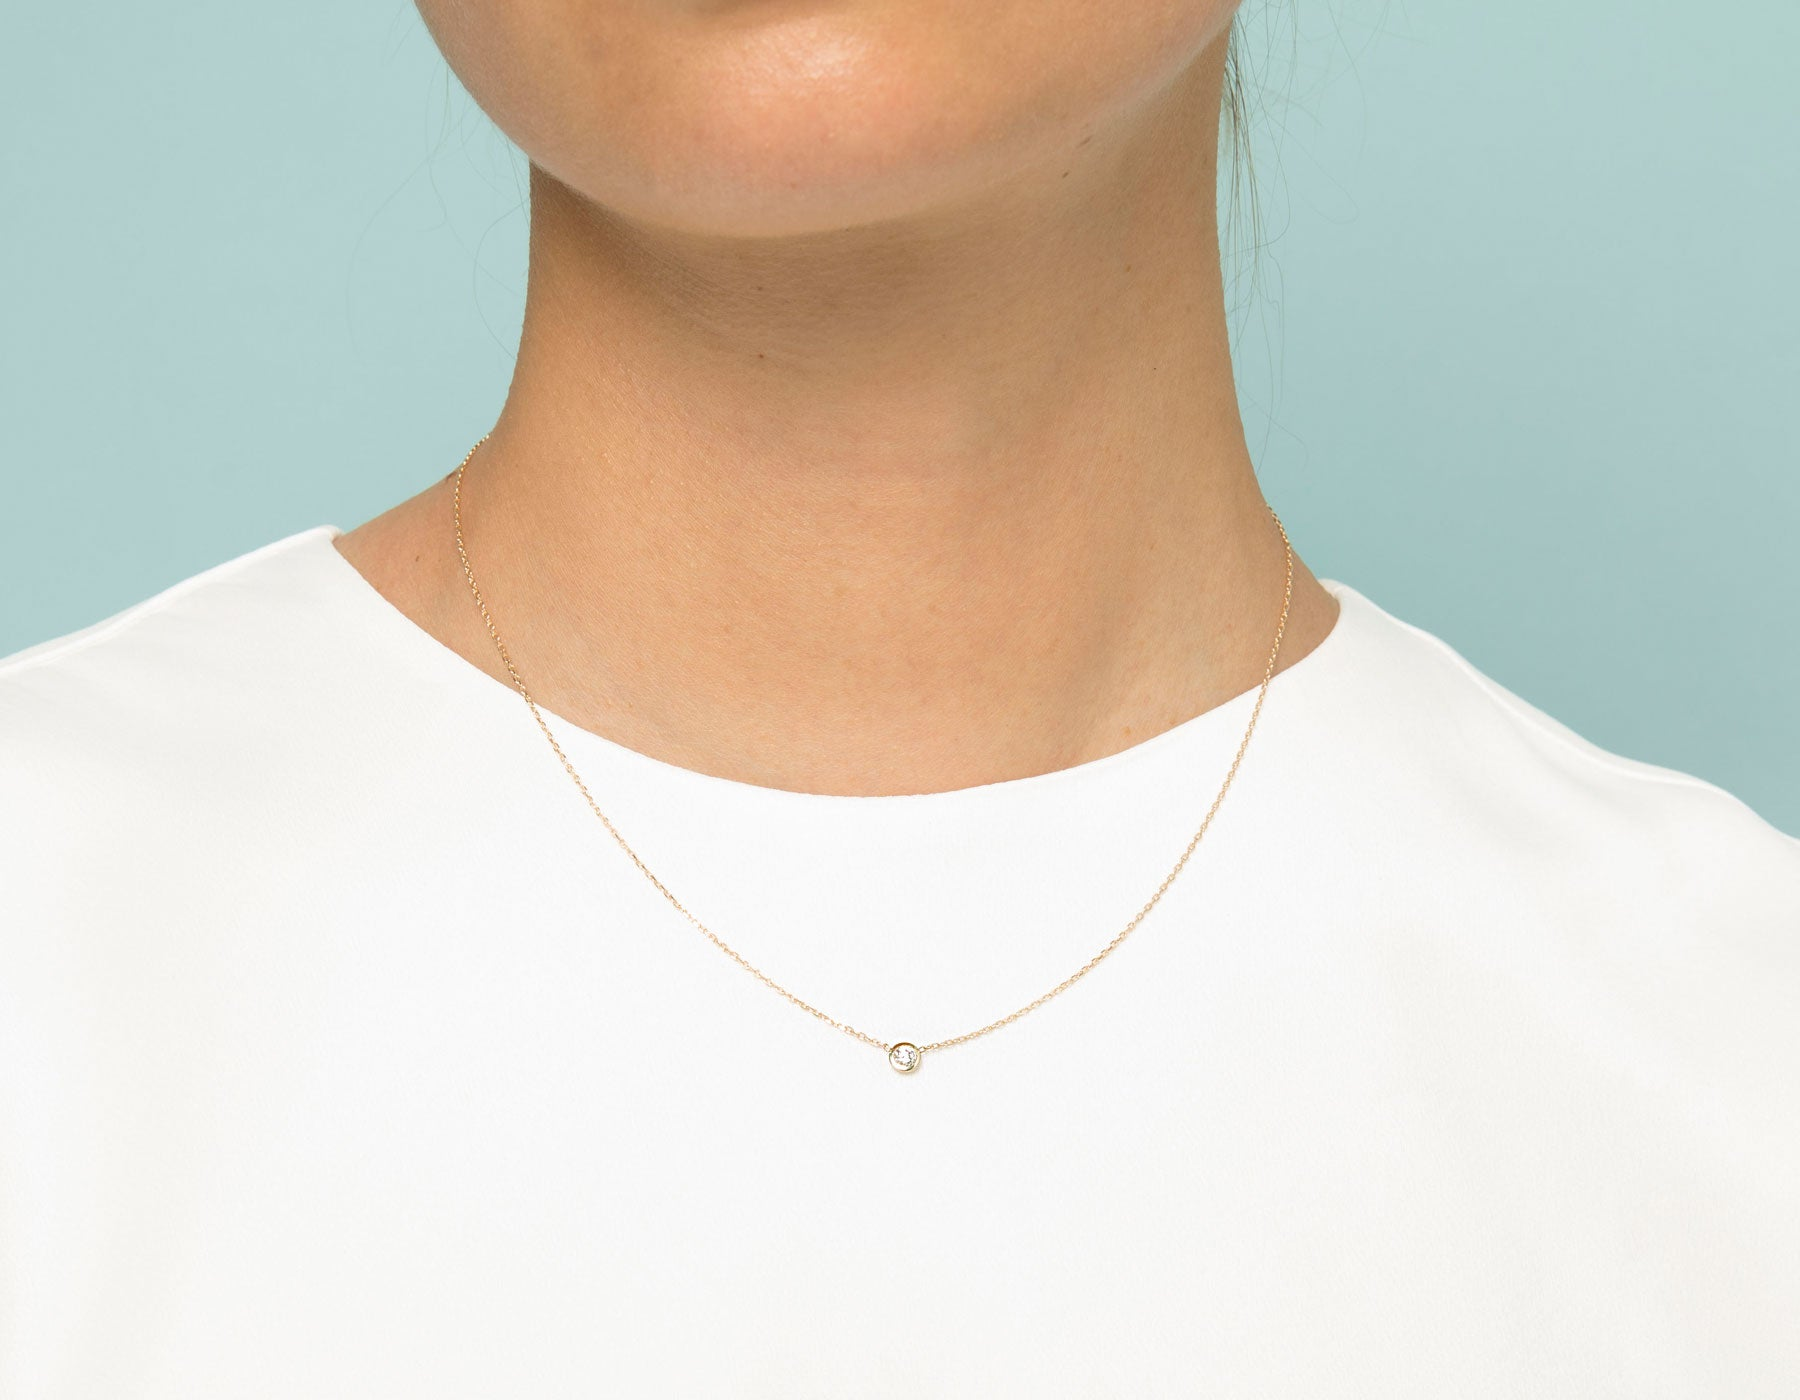 Model wearing dainty minimalist Round Diamond Bezel Necklace by Vrai, 14K White Gold